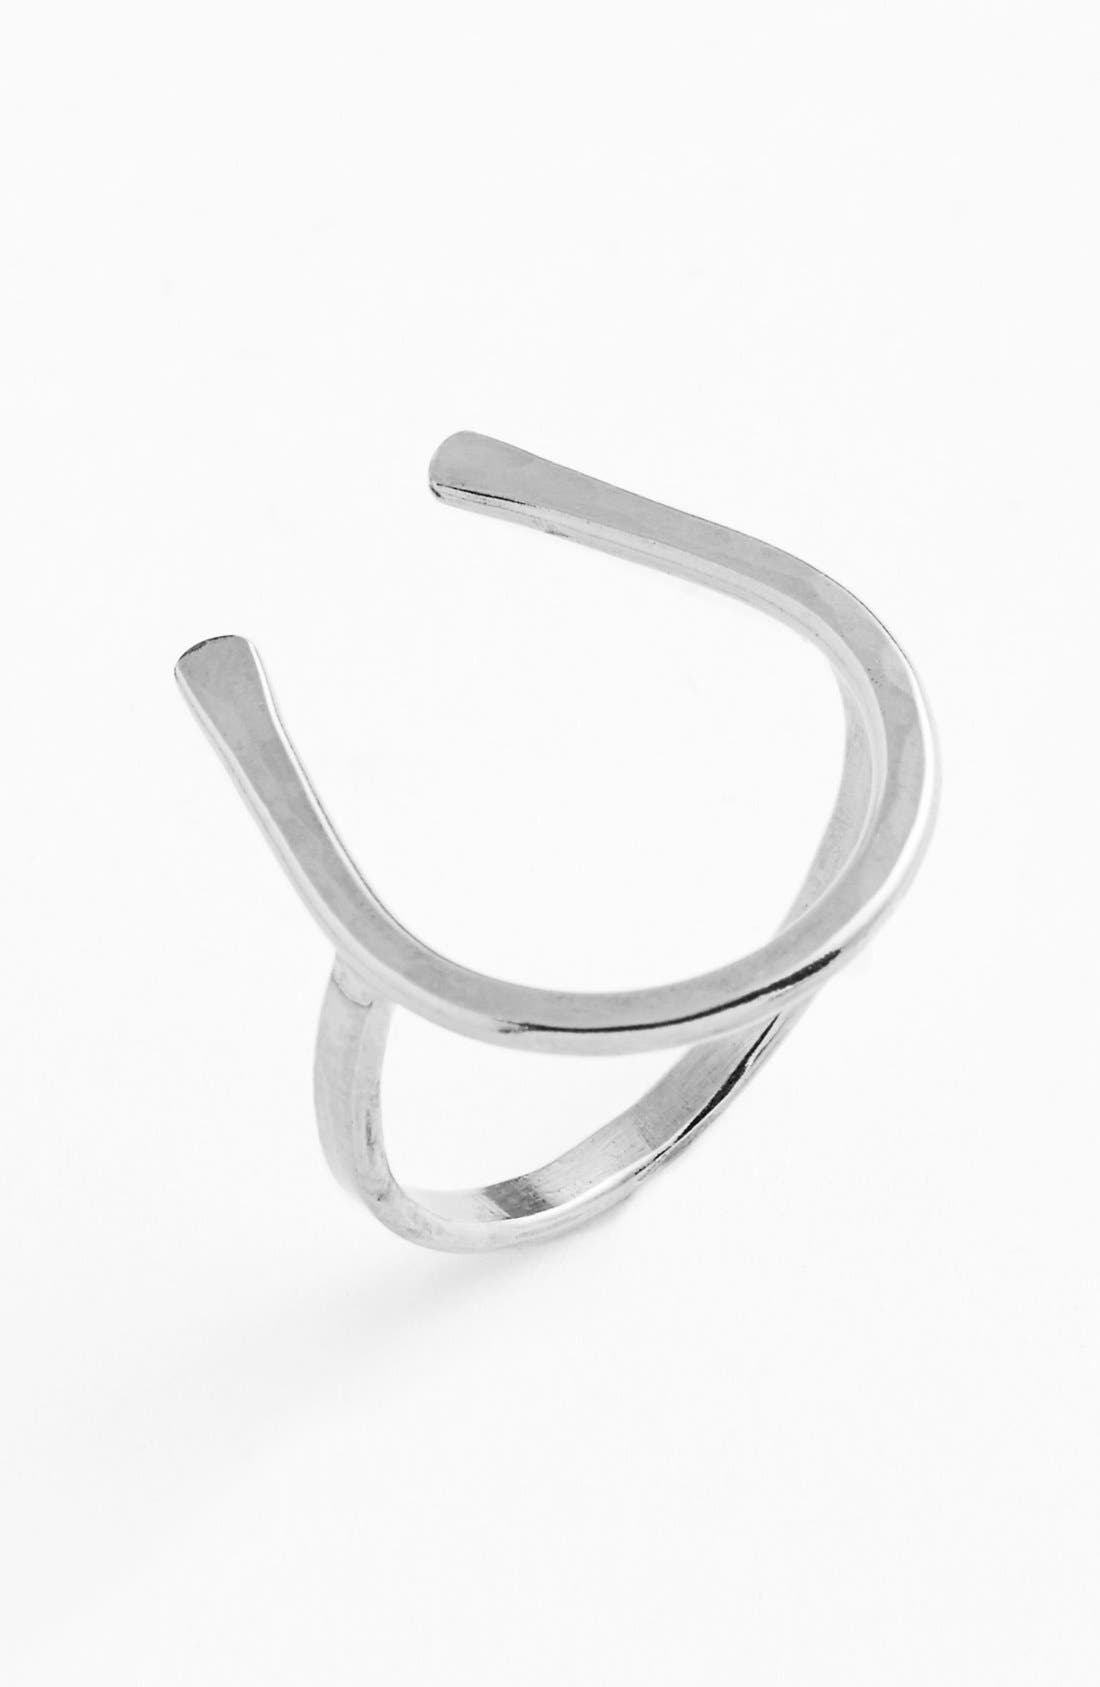 Main Image - Ija Horseshoe Ring